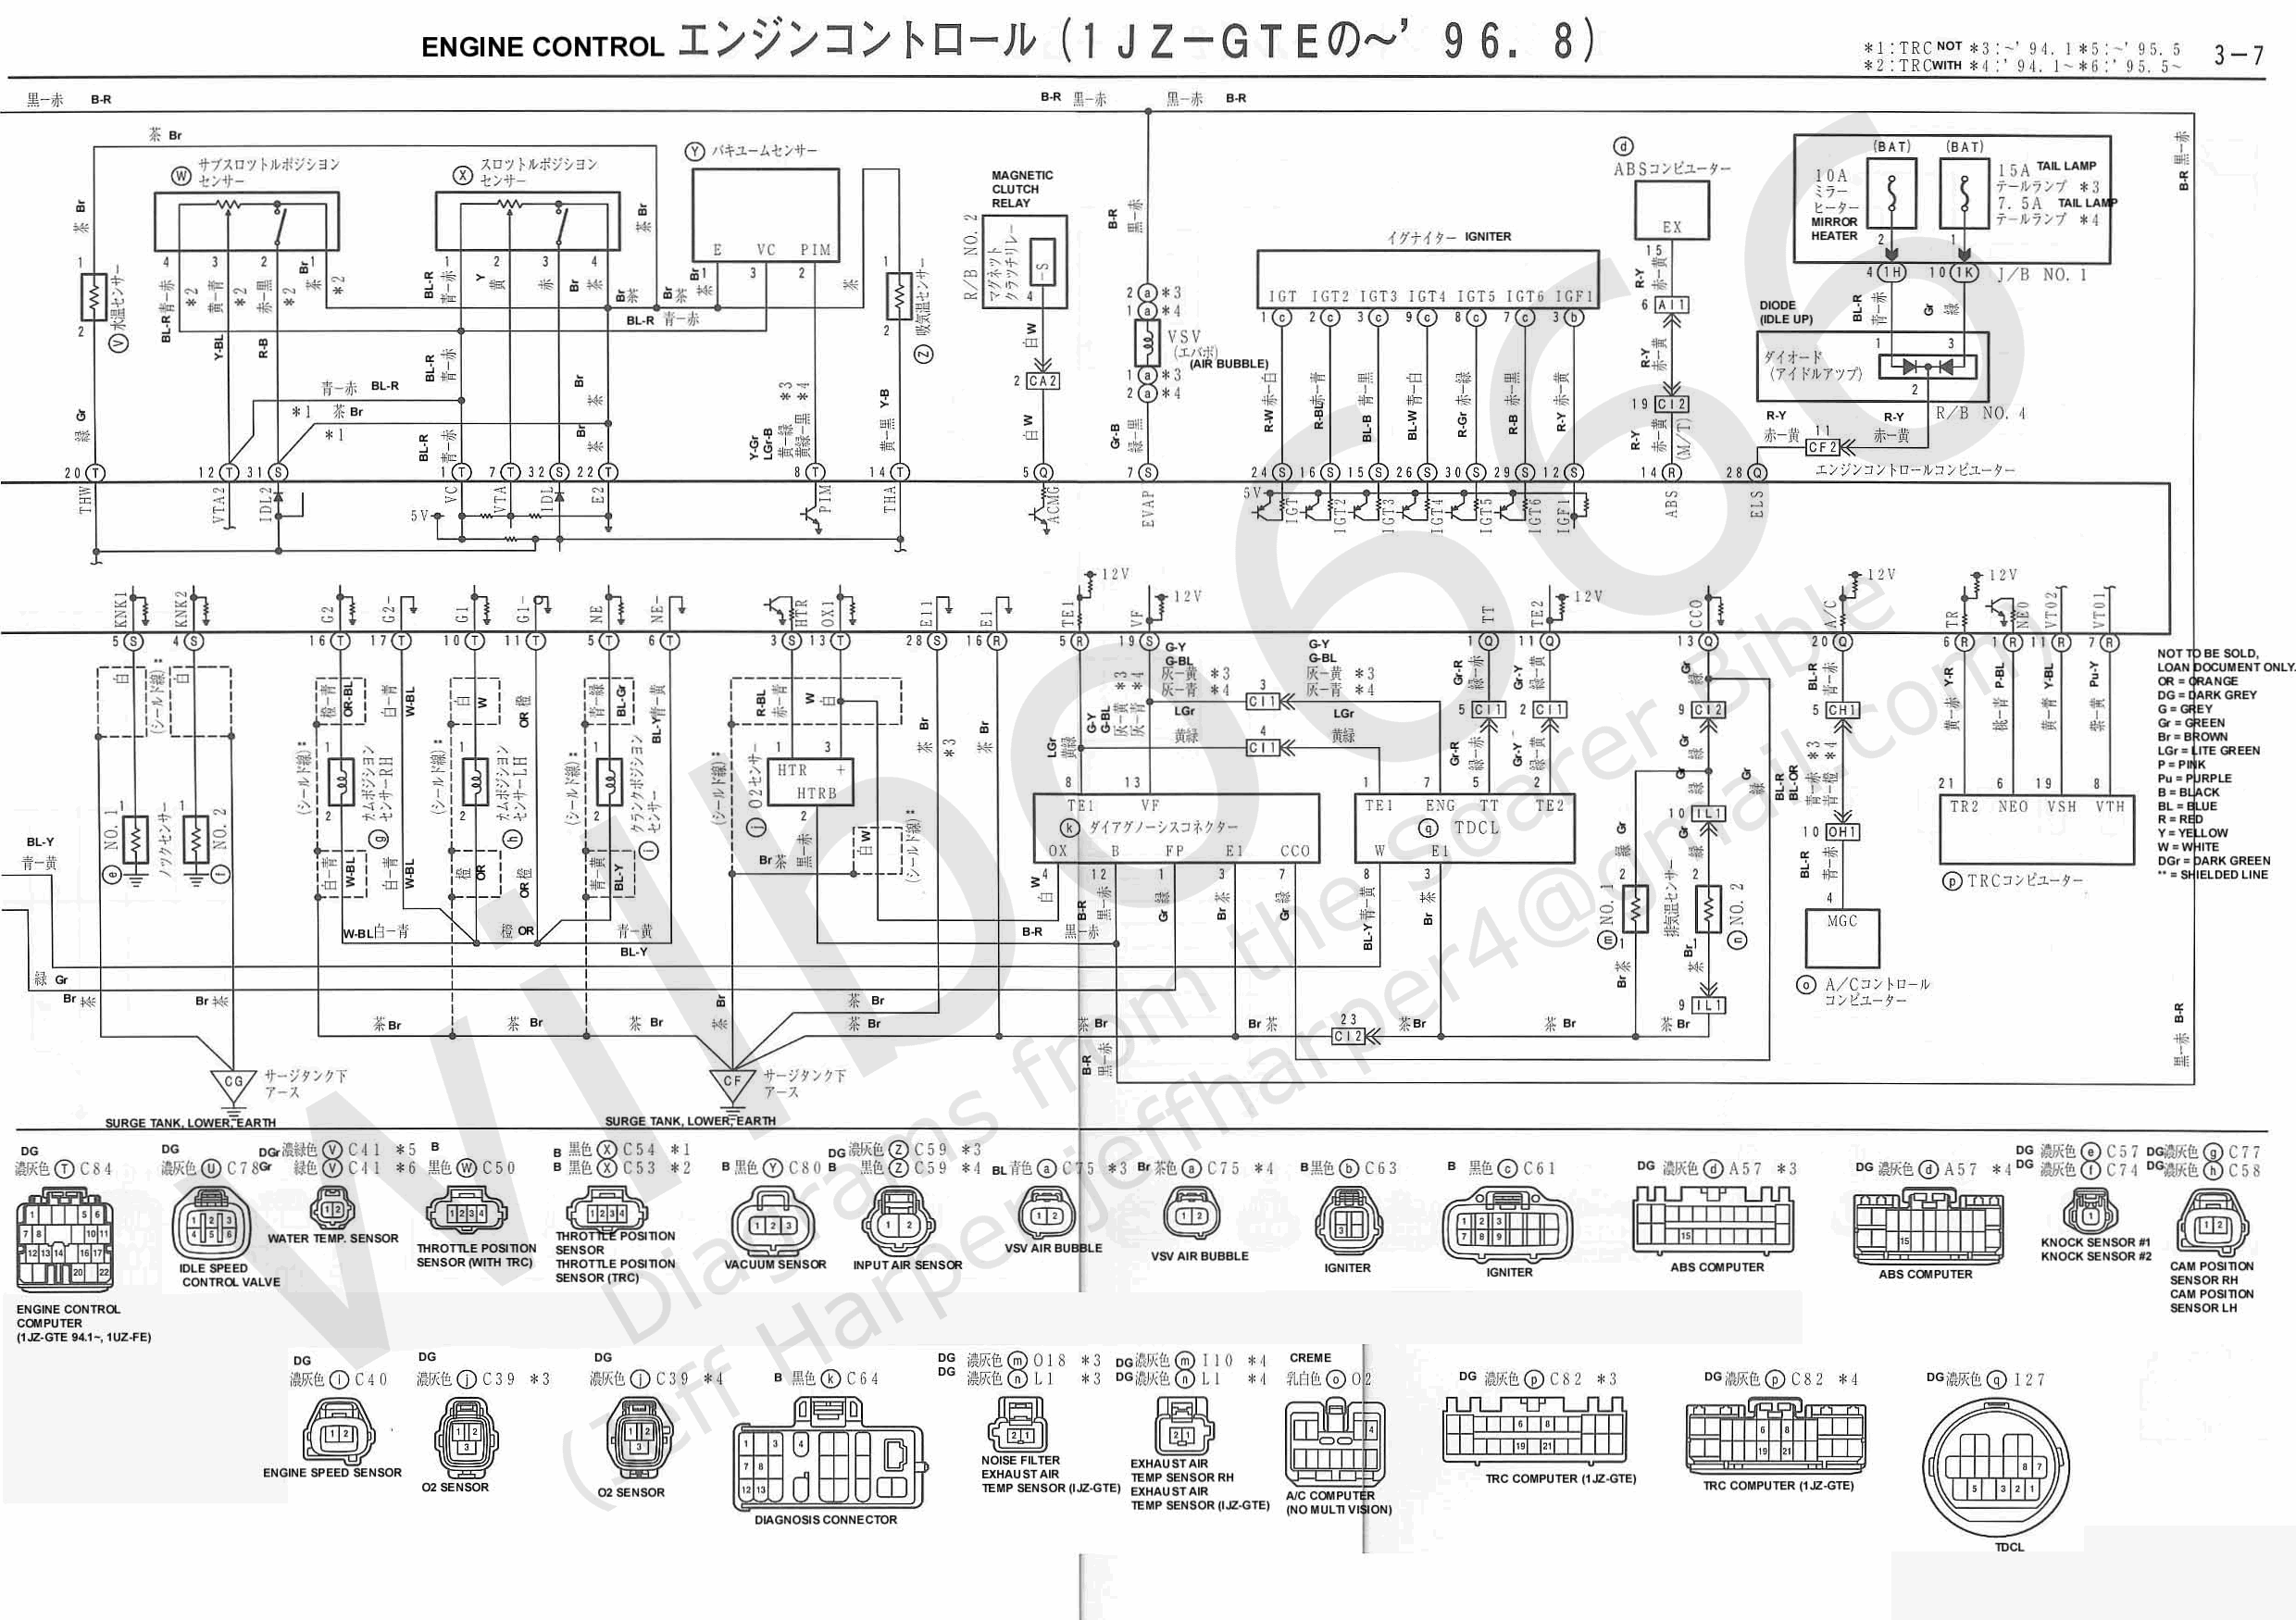 1jz ecu wiring diagram 2002 ford focus cooling system wilbo666 licensed for non commercial use only mirror gte within engine